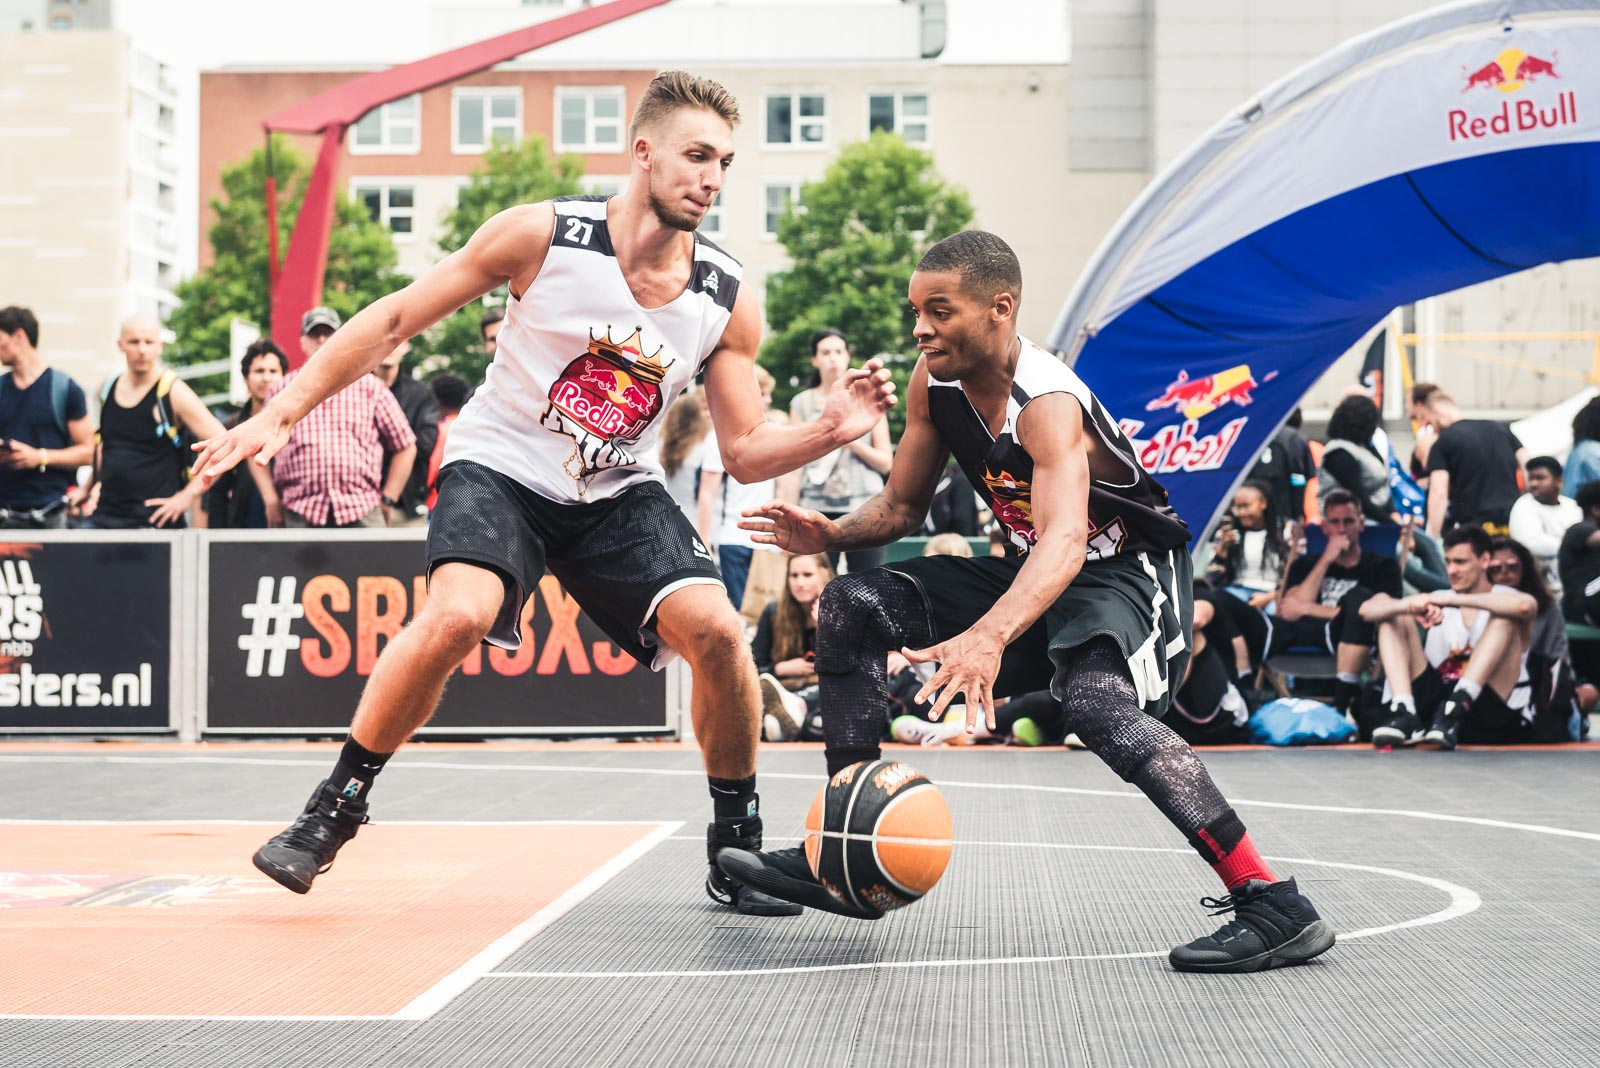 Basketball player makes a passing move during Red Bull Reign